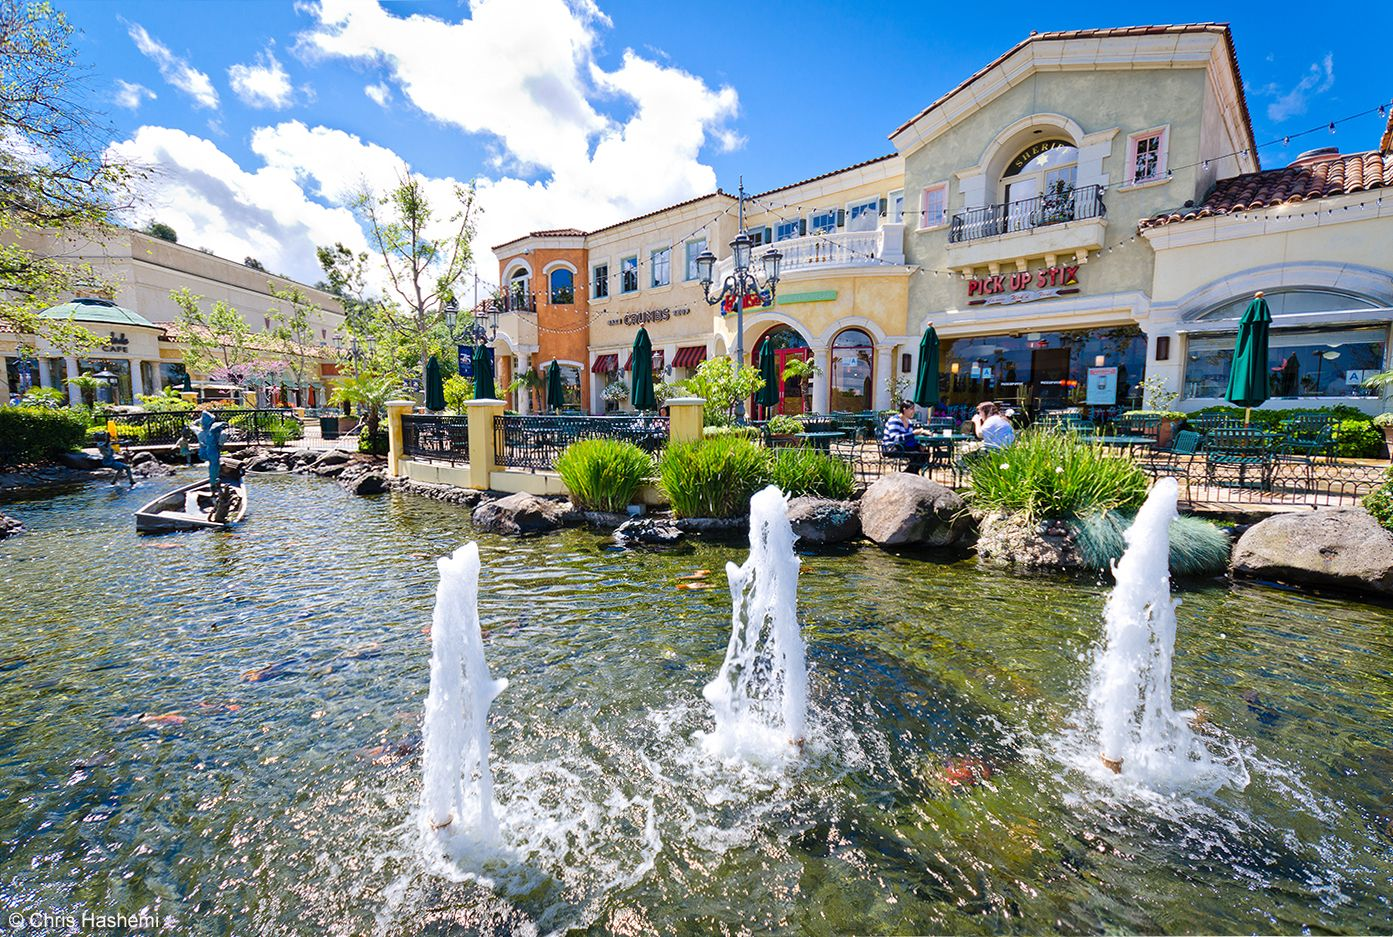 The Commons At Calabasas Is A Crescent Of High End Retail S Restaurants And Entertainment Choices Set Against Hillsides